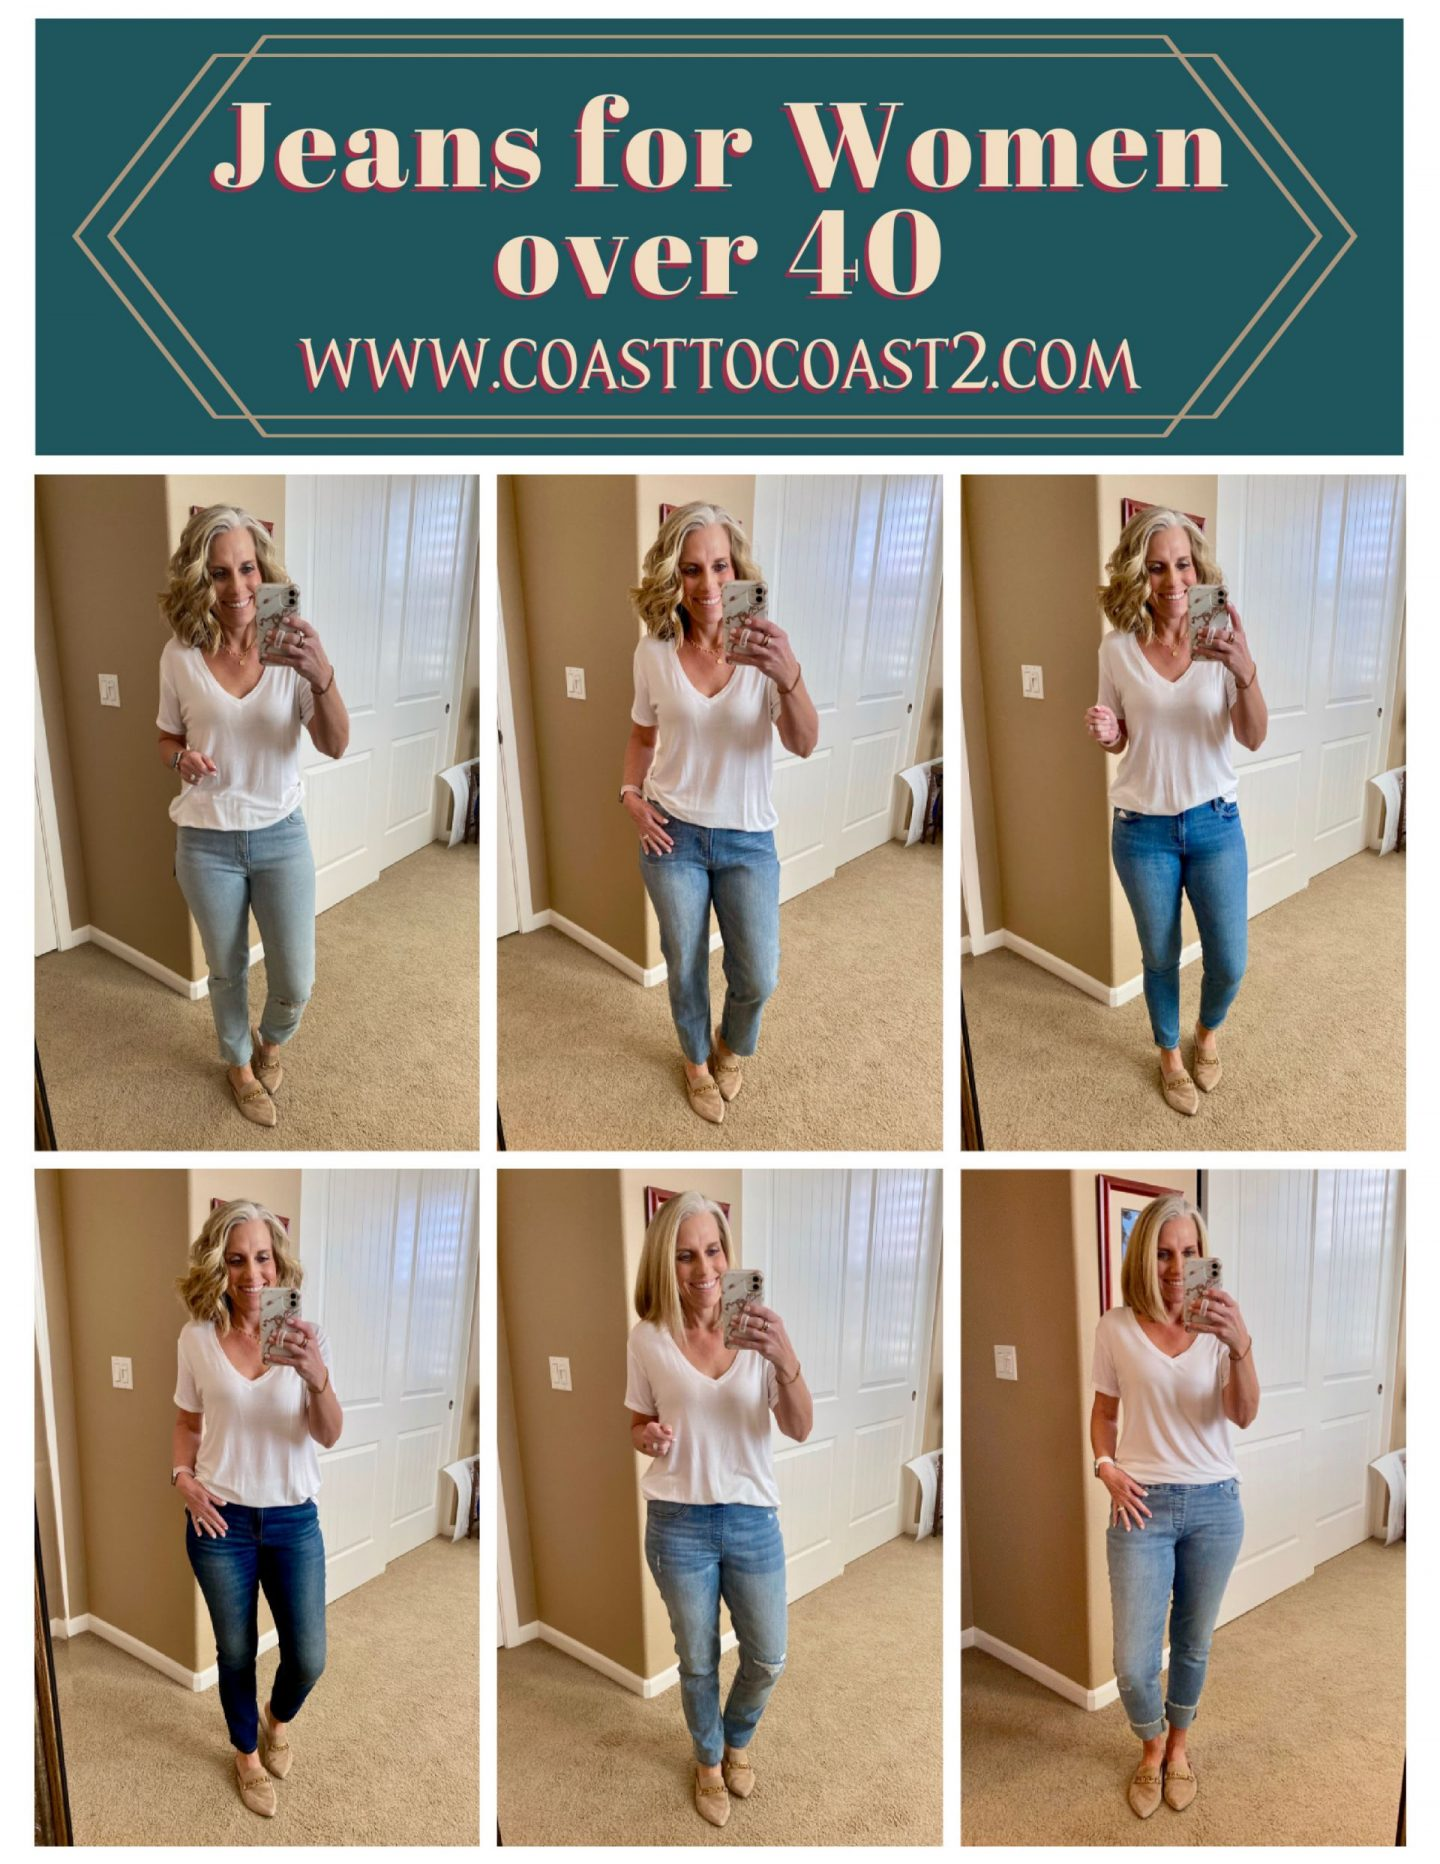 jeans for women over 40